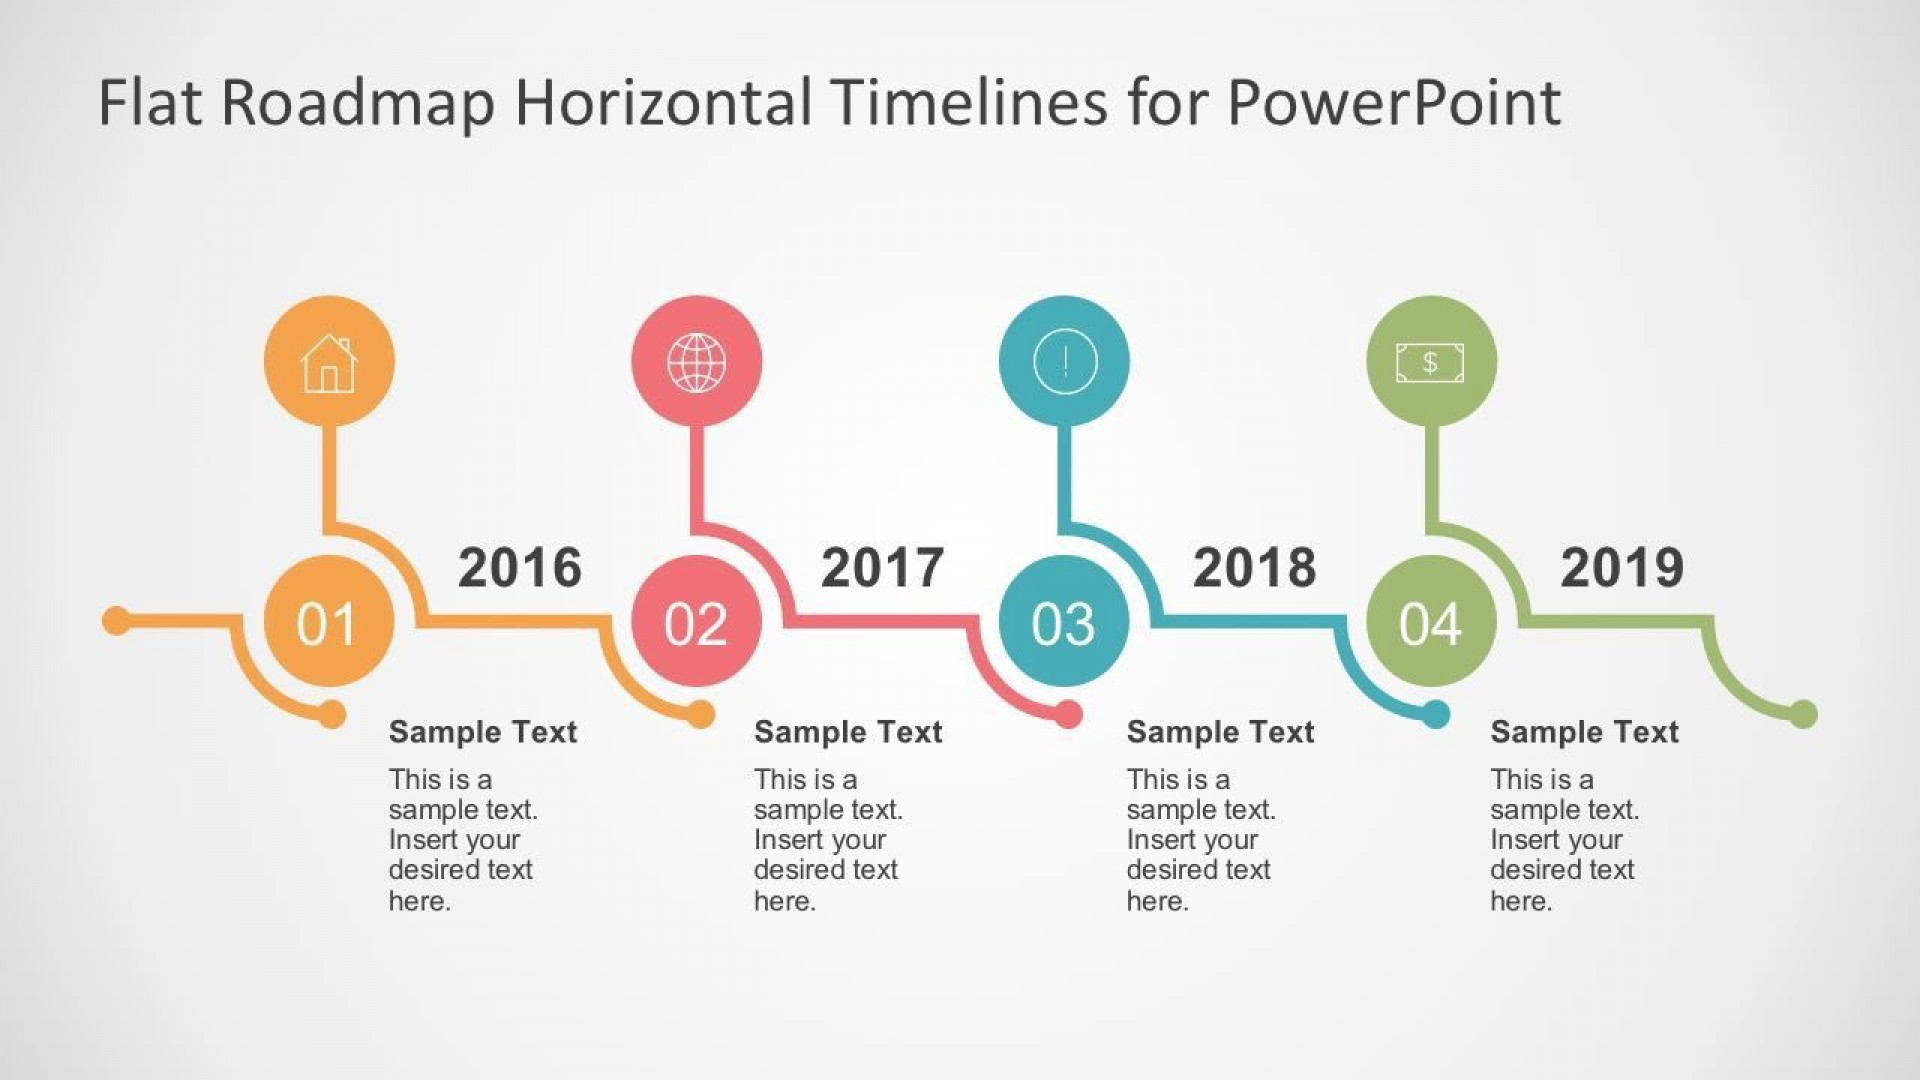 004 Wonderful Timeline Format For Ppt Concept  Template Pptx Free Sheet1920